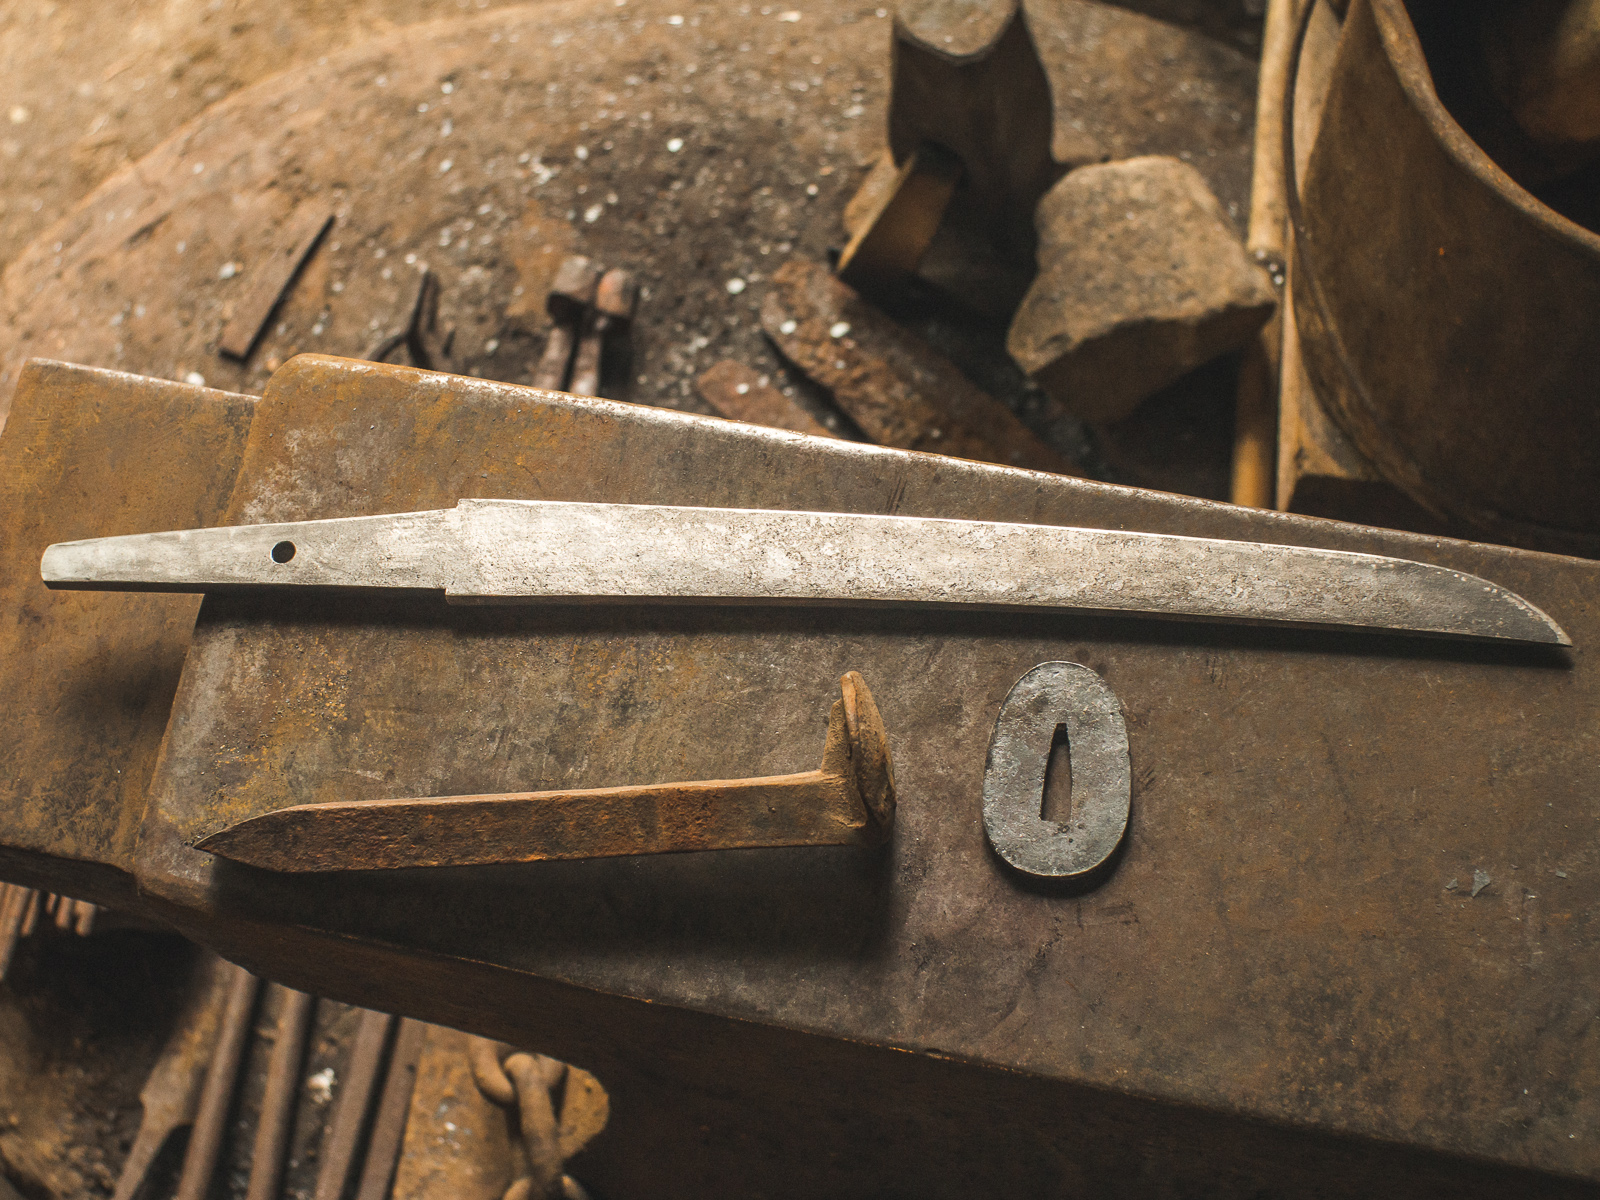 Island Blacksmith: Hand forged tanto letter opener made from a reclaimed railroad spike